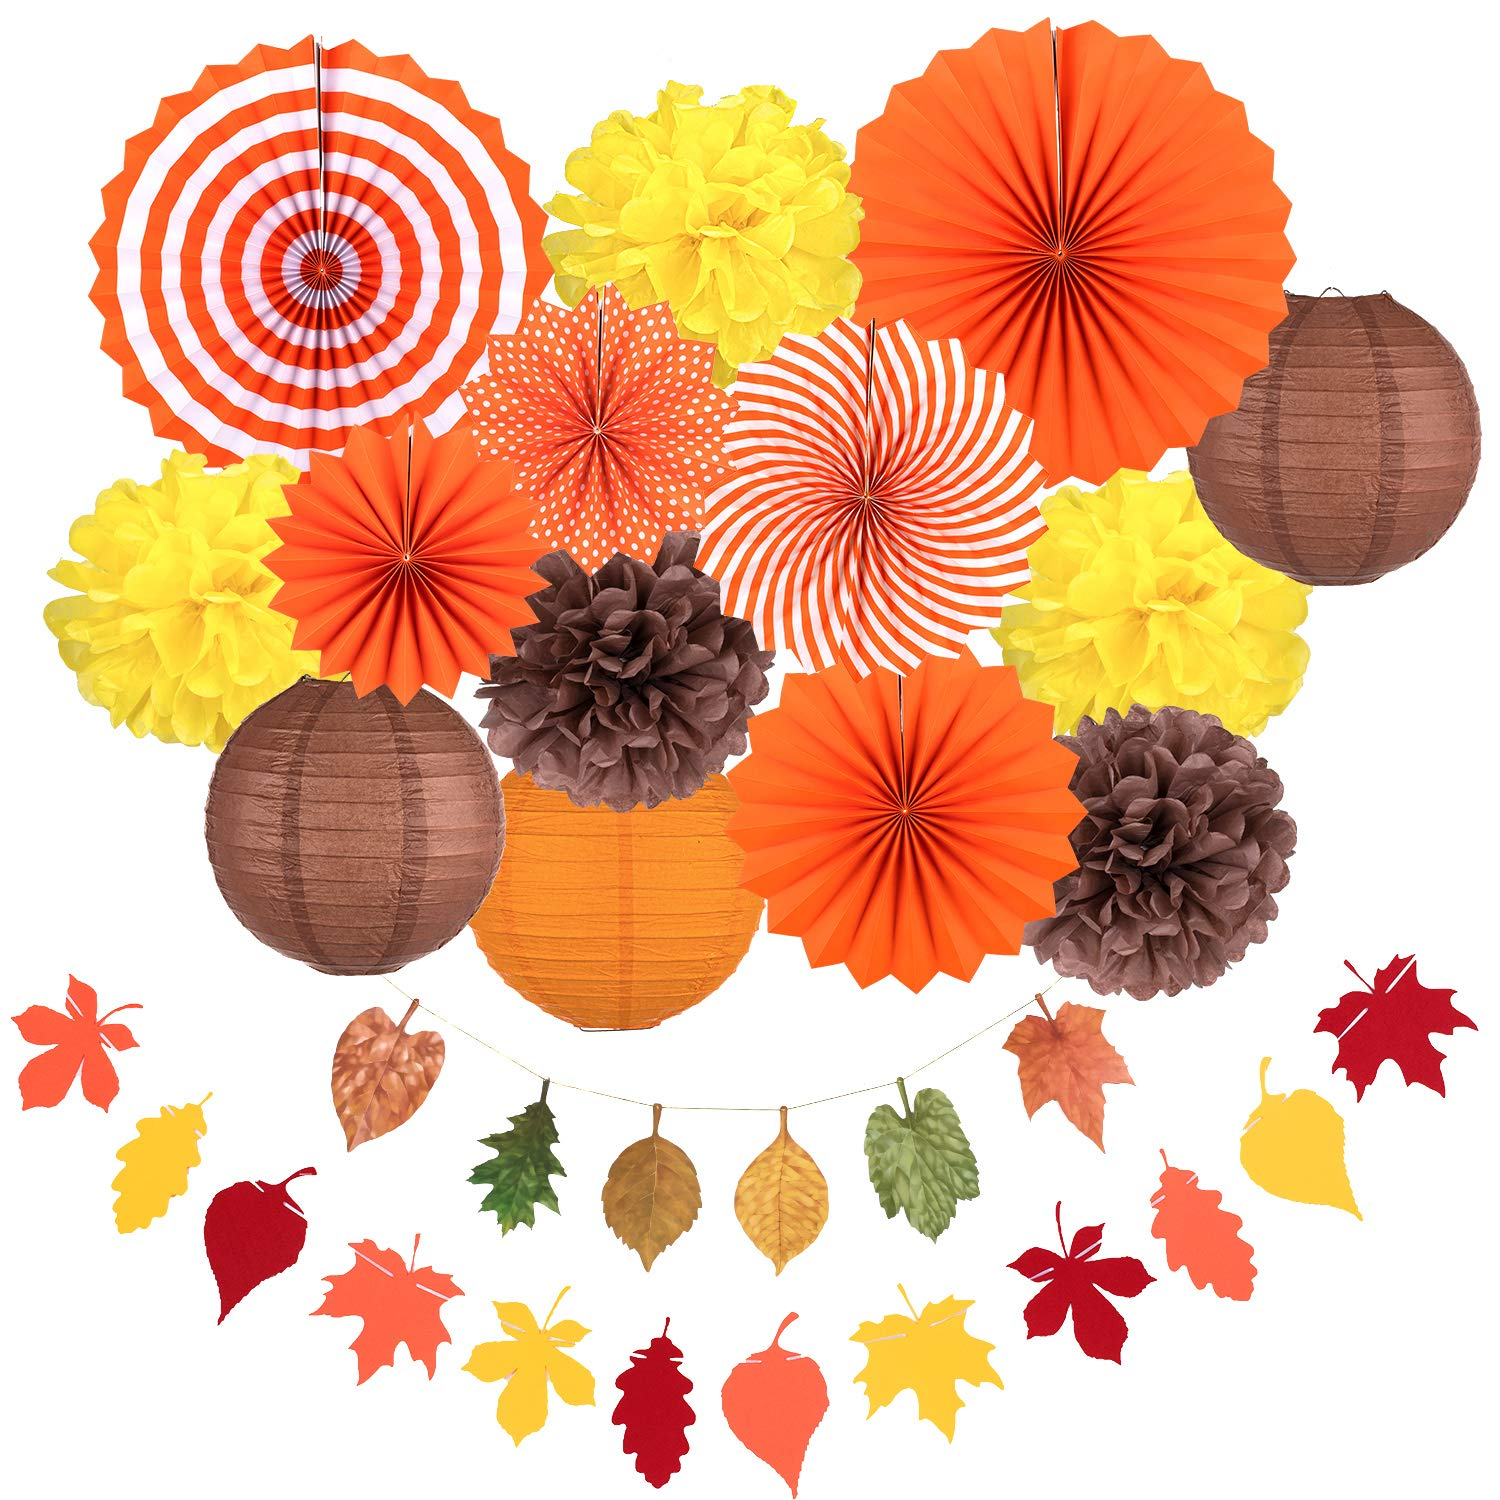 Whaline Fall Party Decorations, Orange Hanging Paper Fans Fall Paper Pompoms Paper Lanterns Maple Leaves Bunting Garlands for Autumn Celebration, Thanksgiving Party, Birthday Decor (16 Pcs) by Whaline